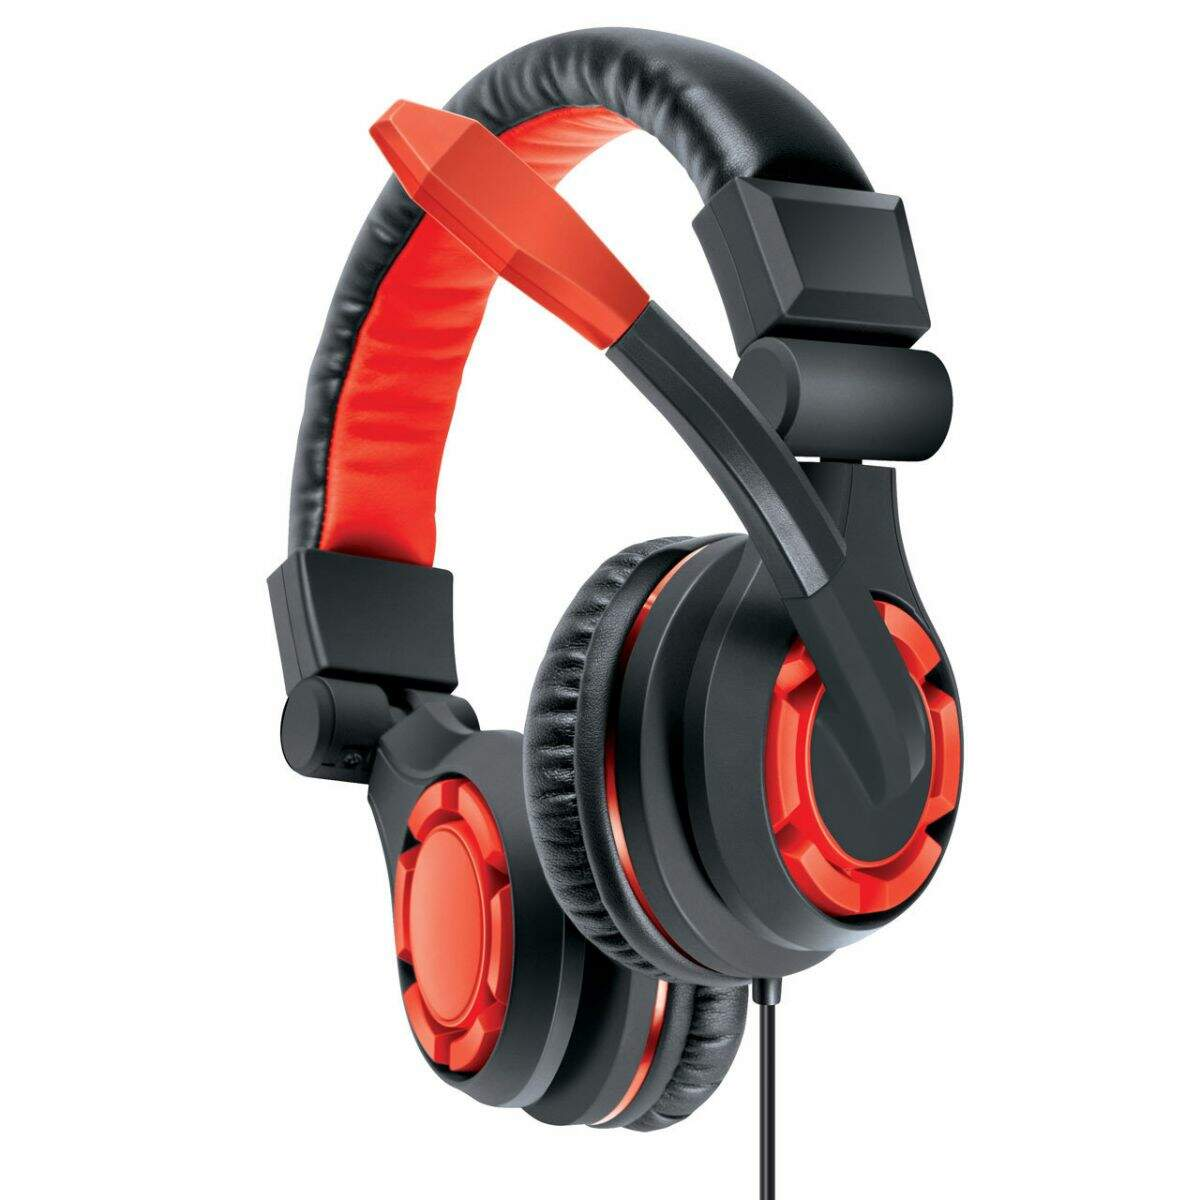 Headset Gamer Universal GRX 670 - Dreamgear